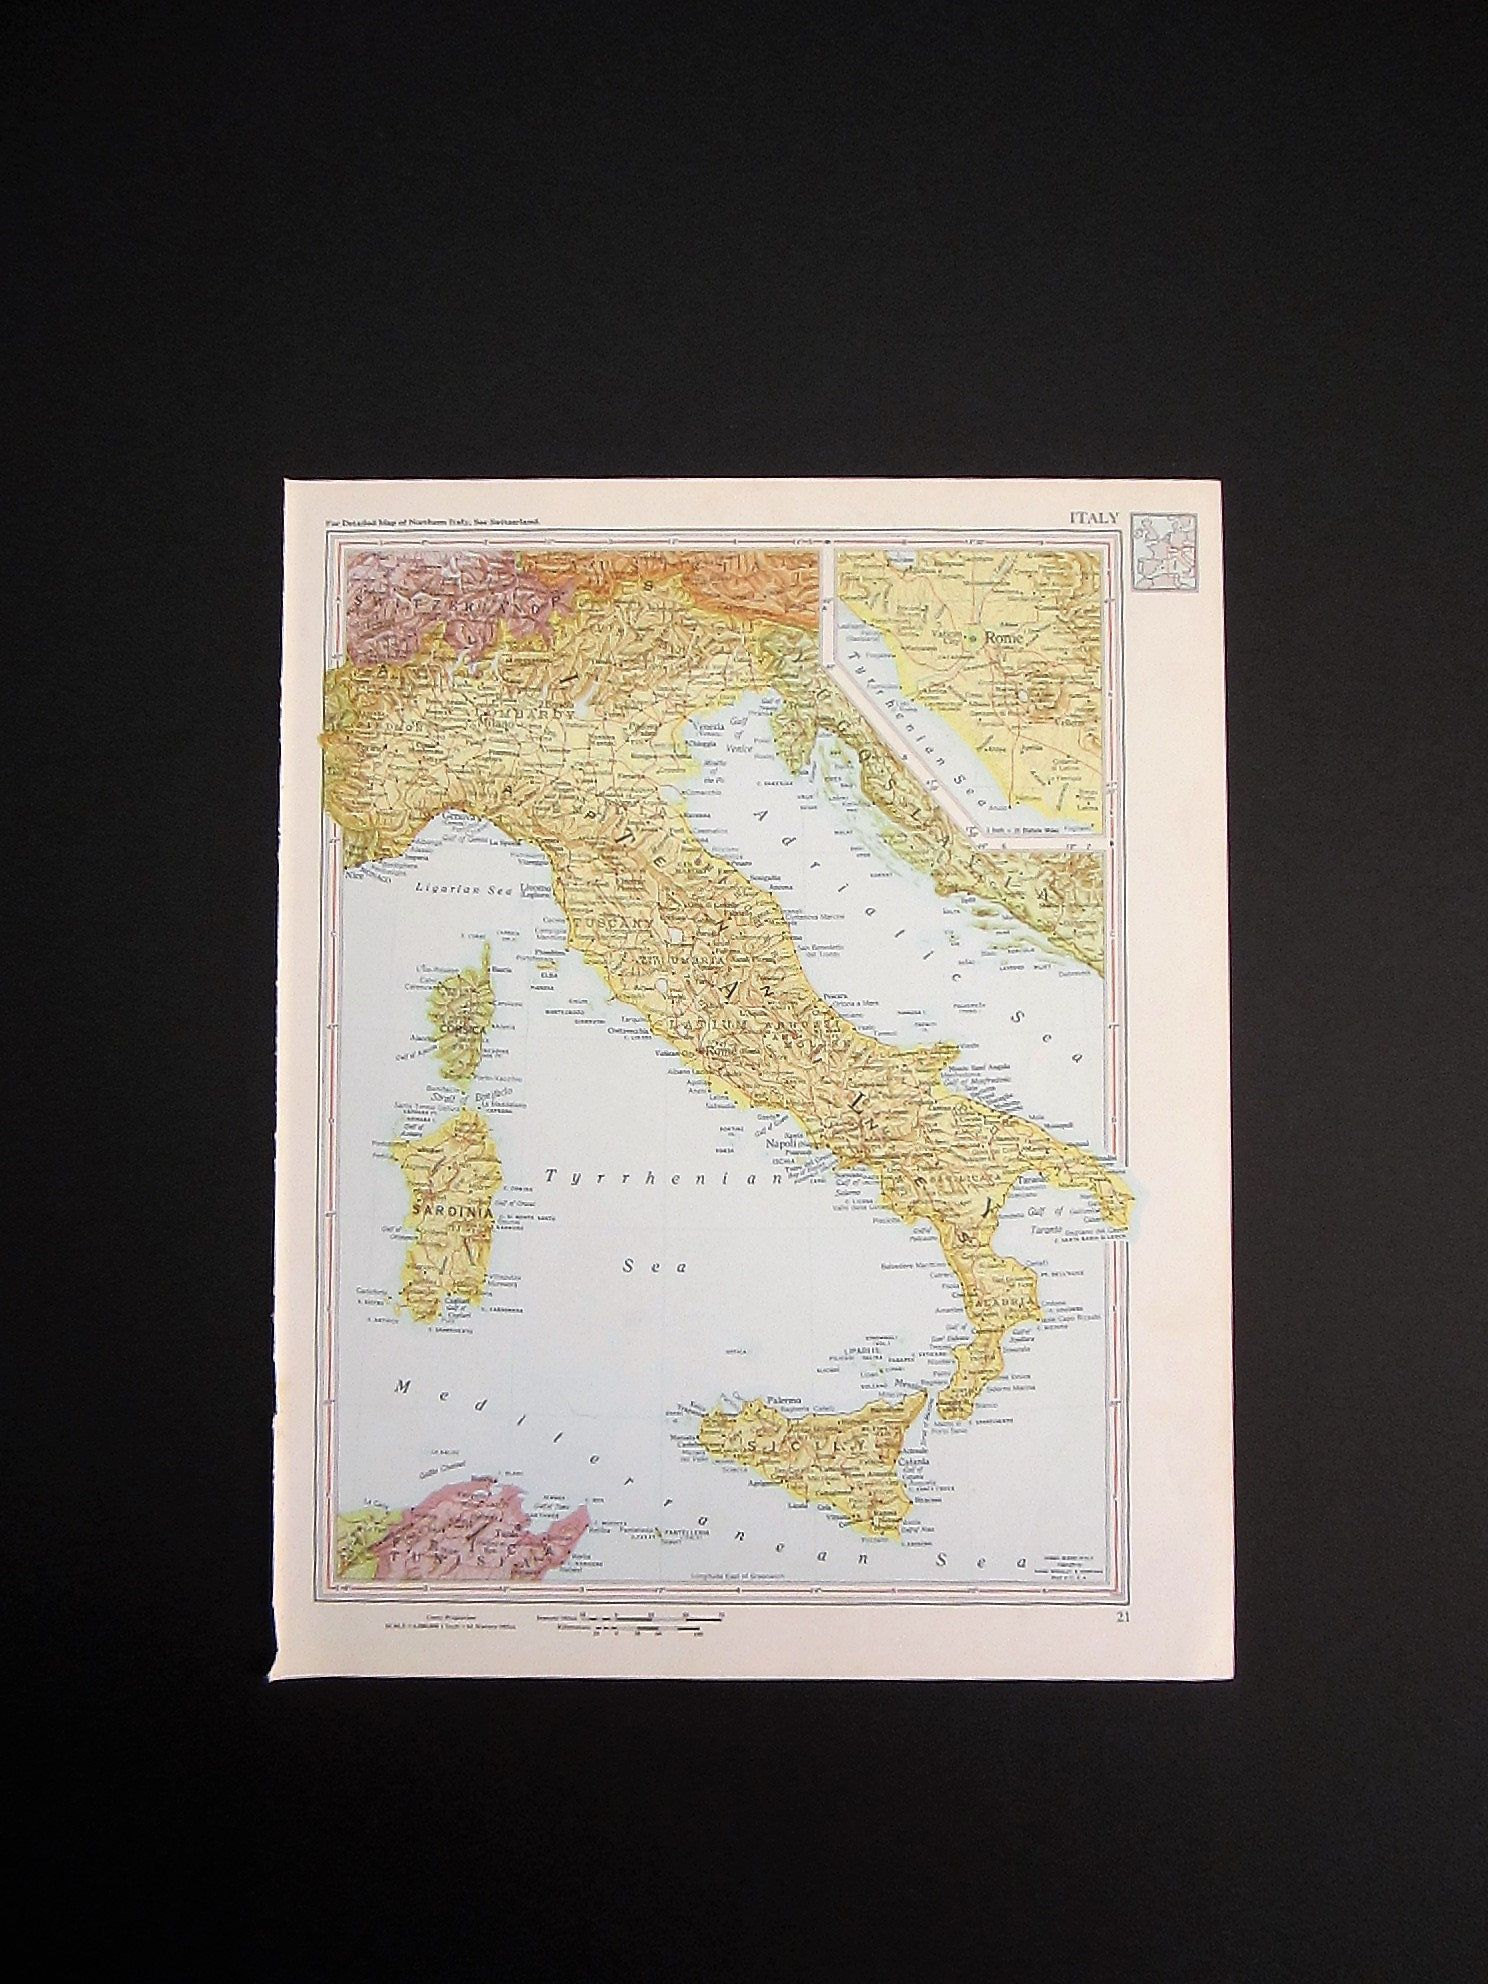 1960 map of italy vintage map wall art italy wall art vintage 1960 map of italy vintage map wall art italy wall art vintage atlas gumiabroncs Image collections